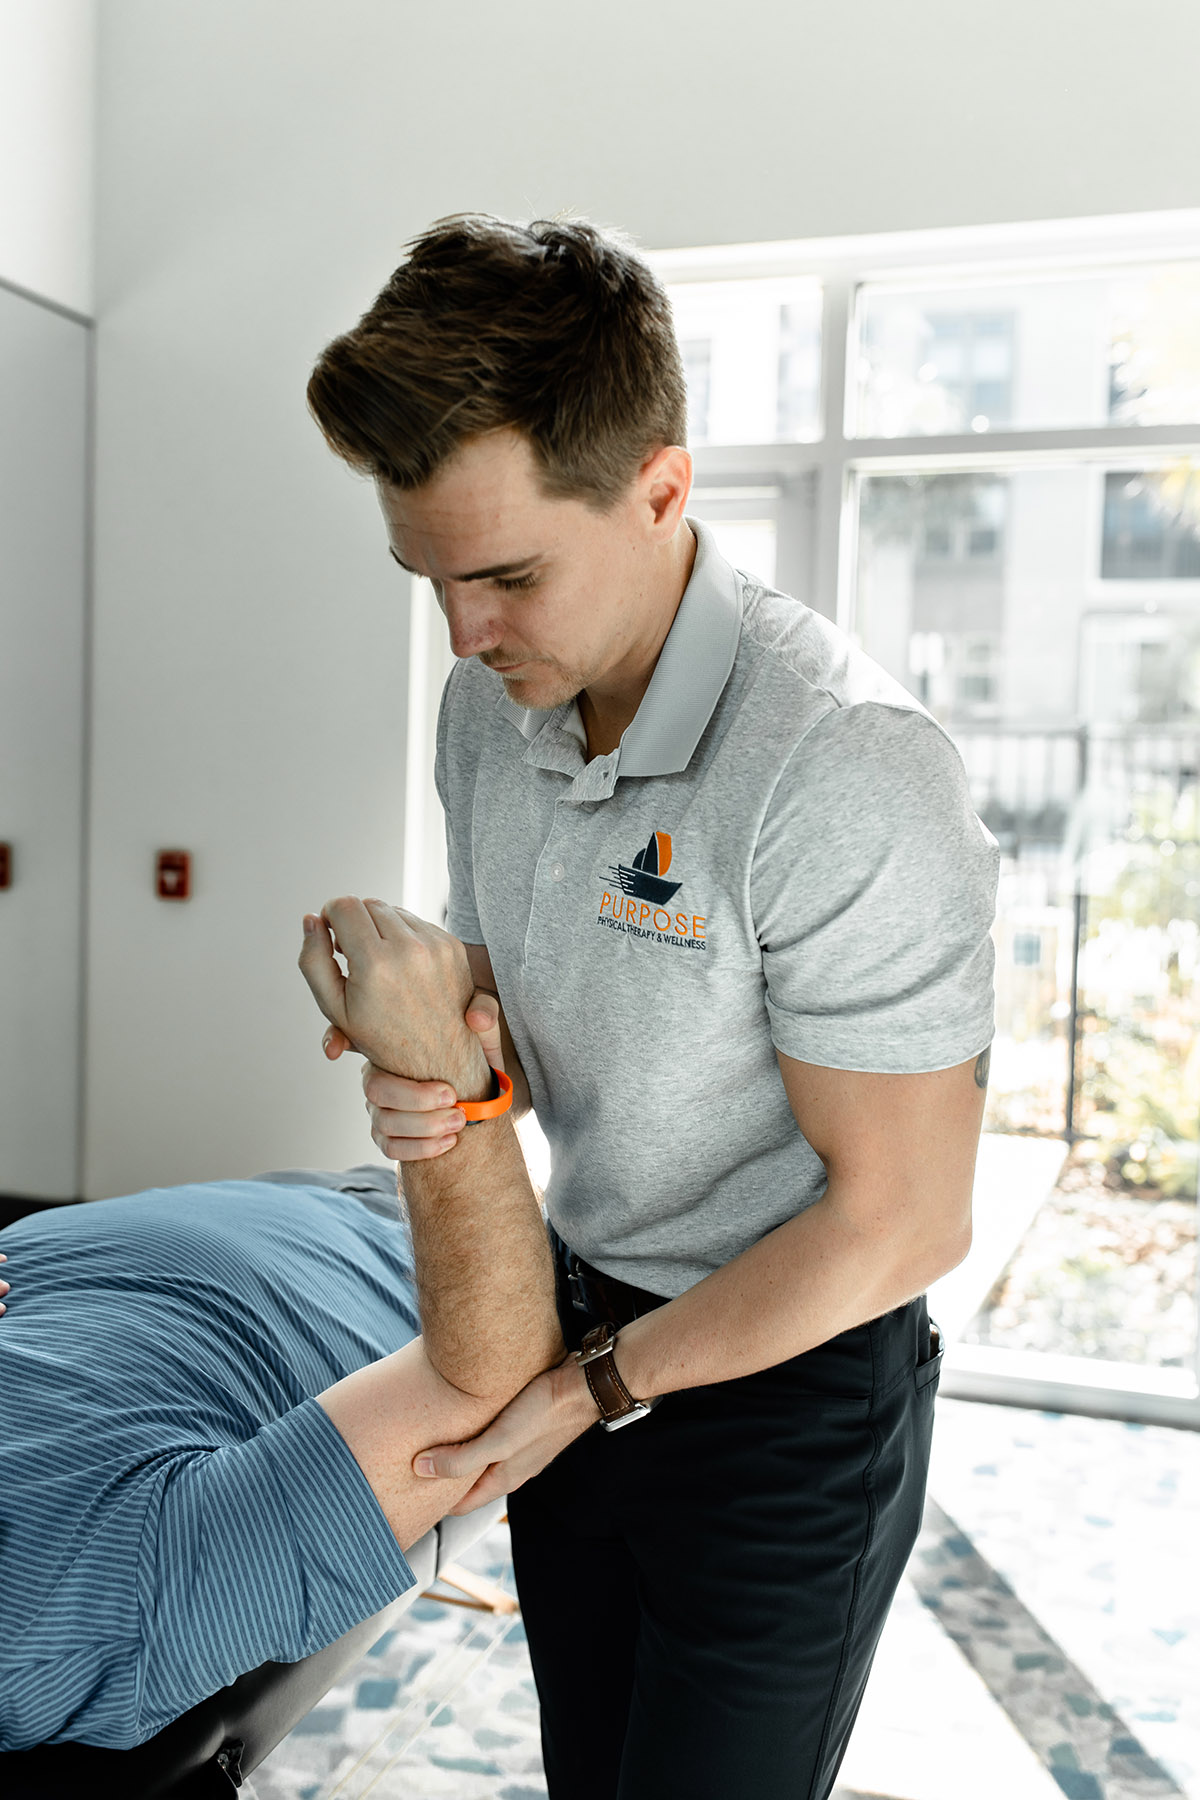 cash-based physical therapy